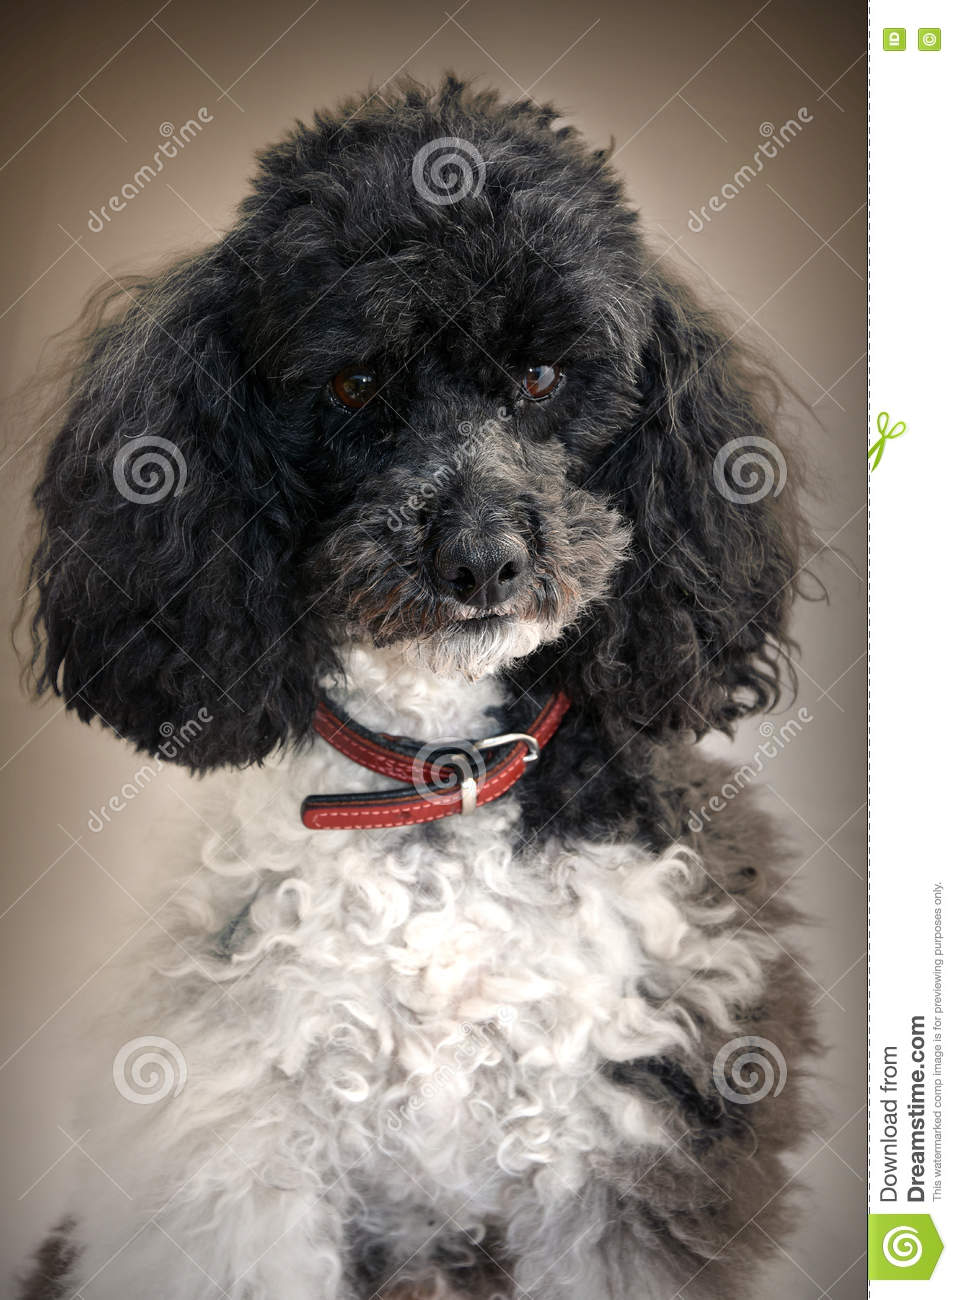 Harlequin poodle stock photo. Image of male, cute, furry ...